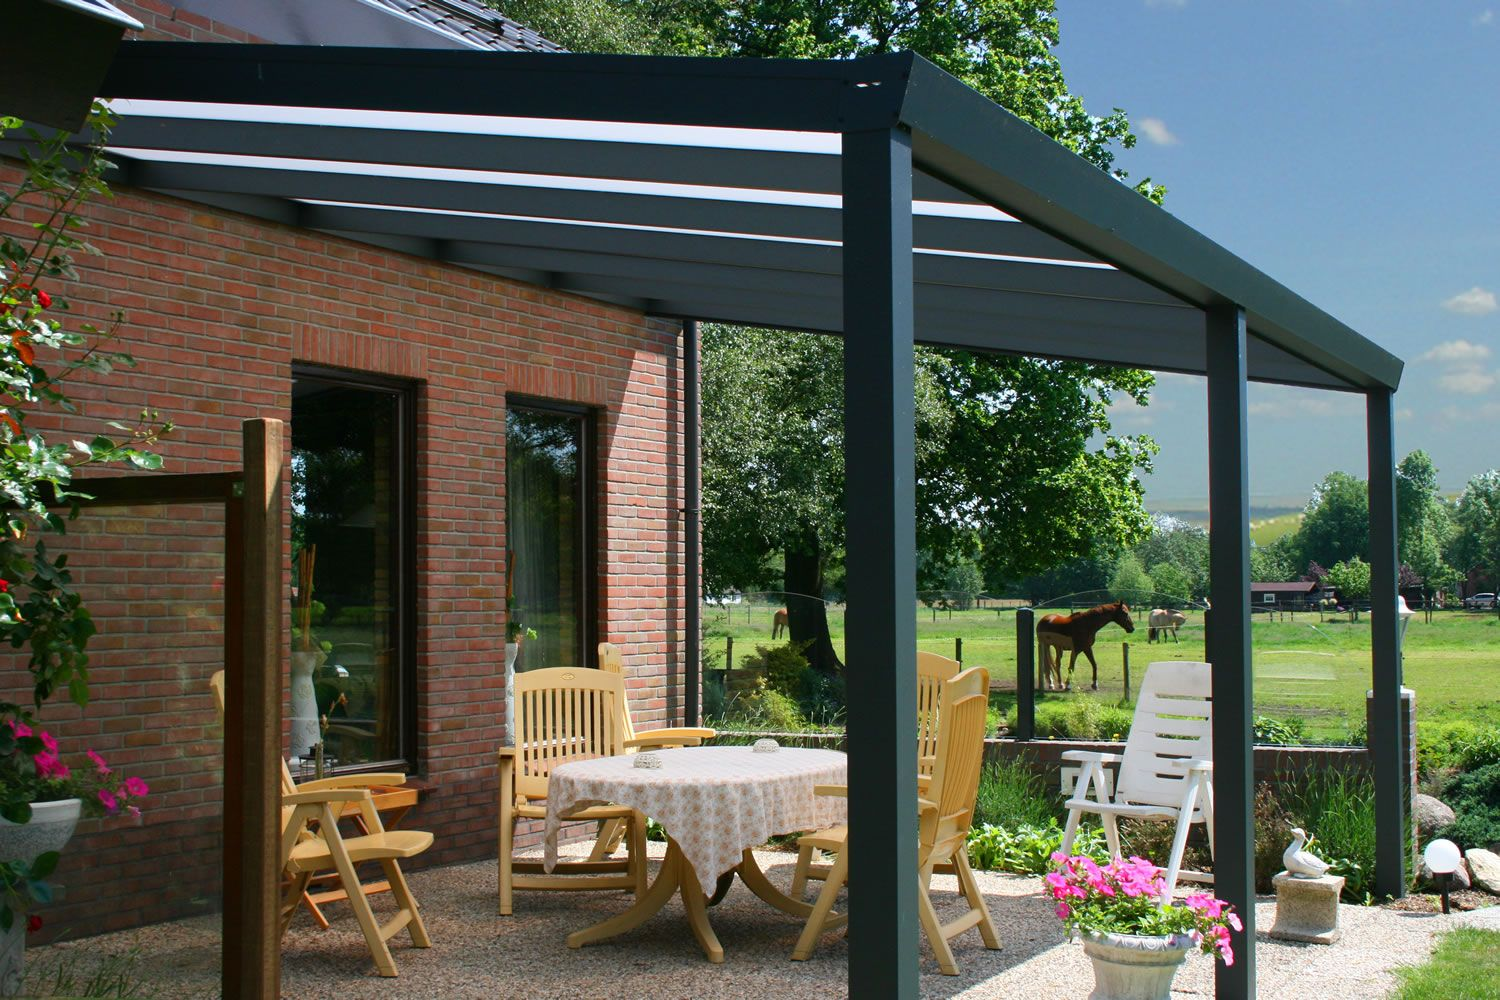 Veranda Retractable En Kit A Canopy Or Veranda For Your Garden Patio Pergola